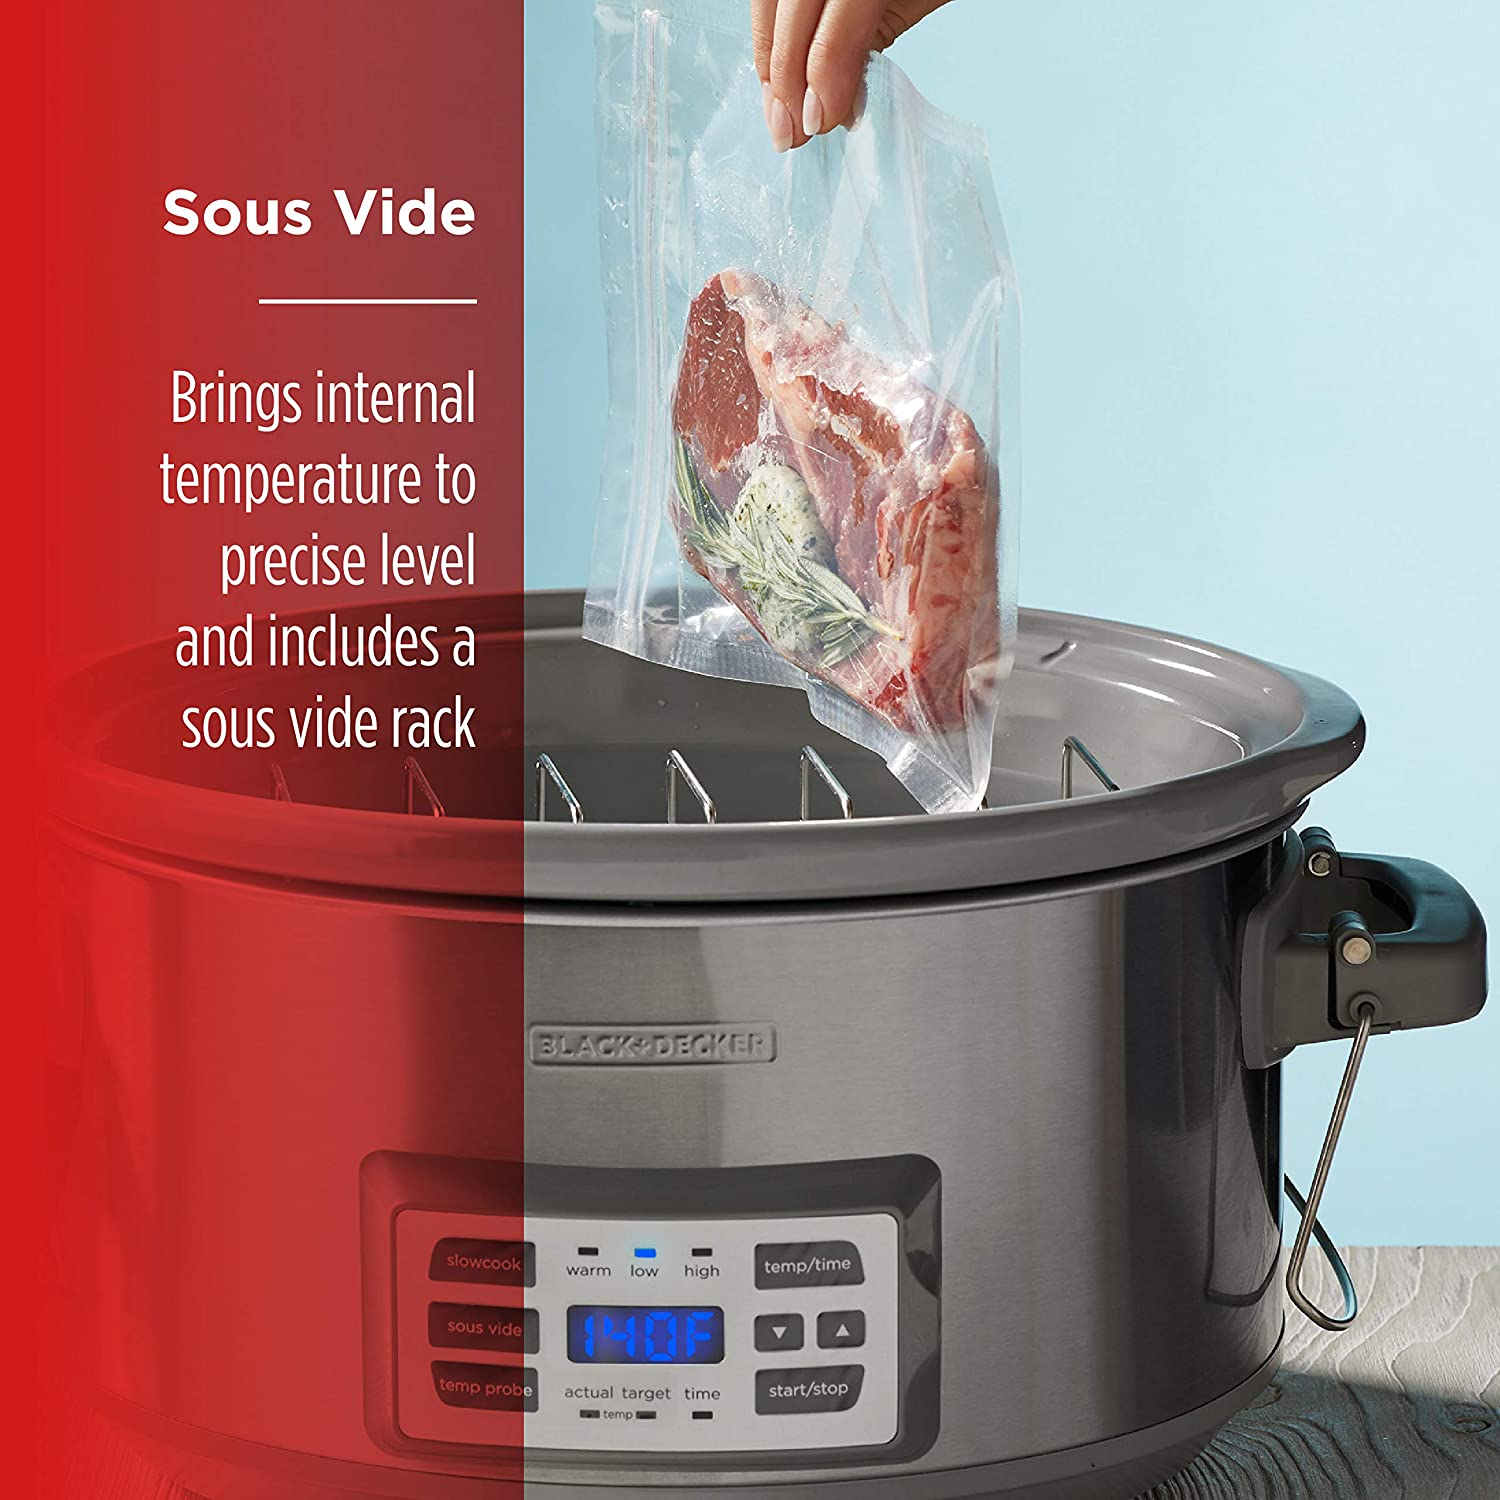 Slow cooker with Sous Vide cooking